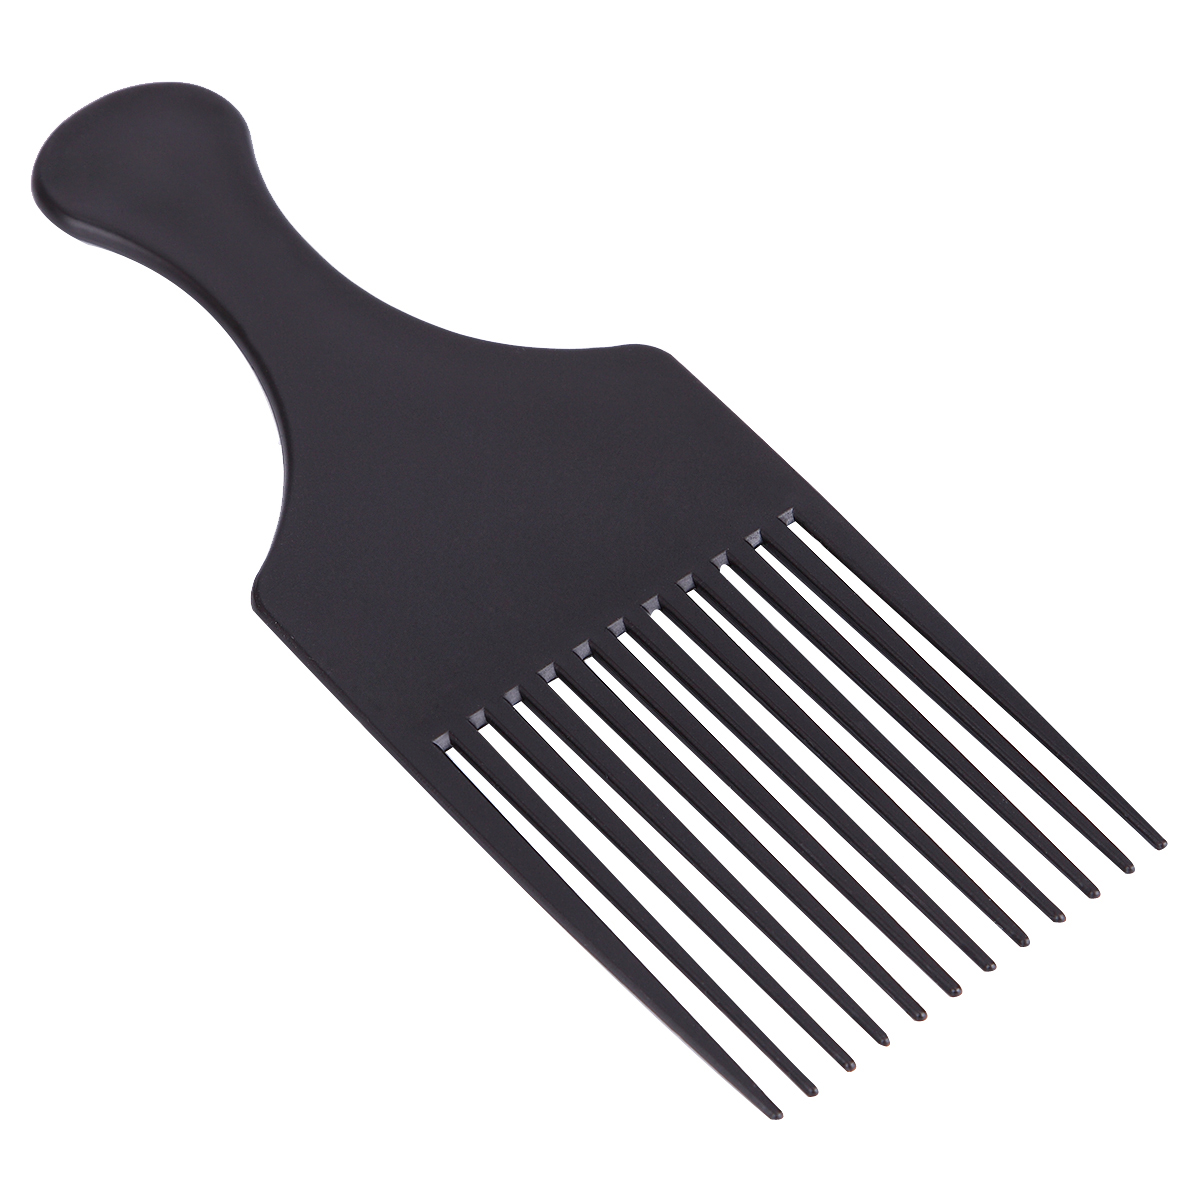 Pro Salon Hair Dyeing Long Tooth Comb Home Use Diy